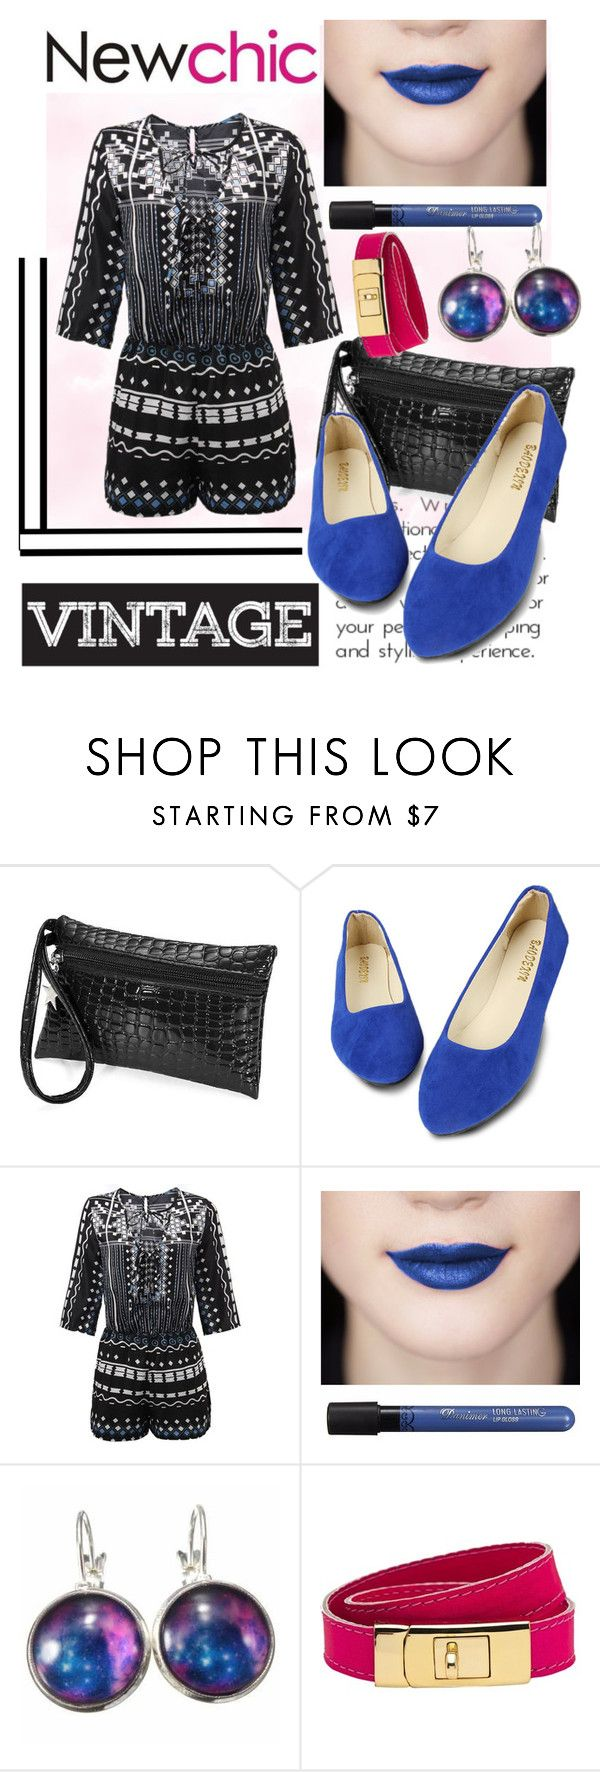 """# newchic"" by madcar-2013 ❤ liked on Polyvore featuring CC SKYE, chic, New and newchic"